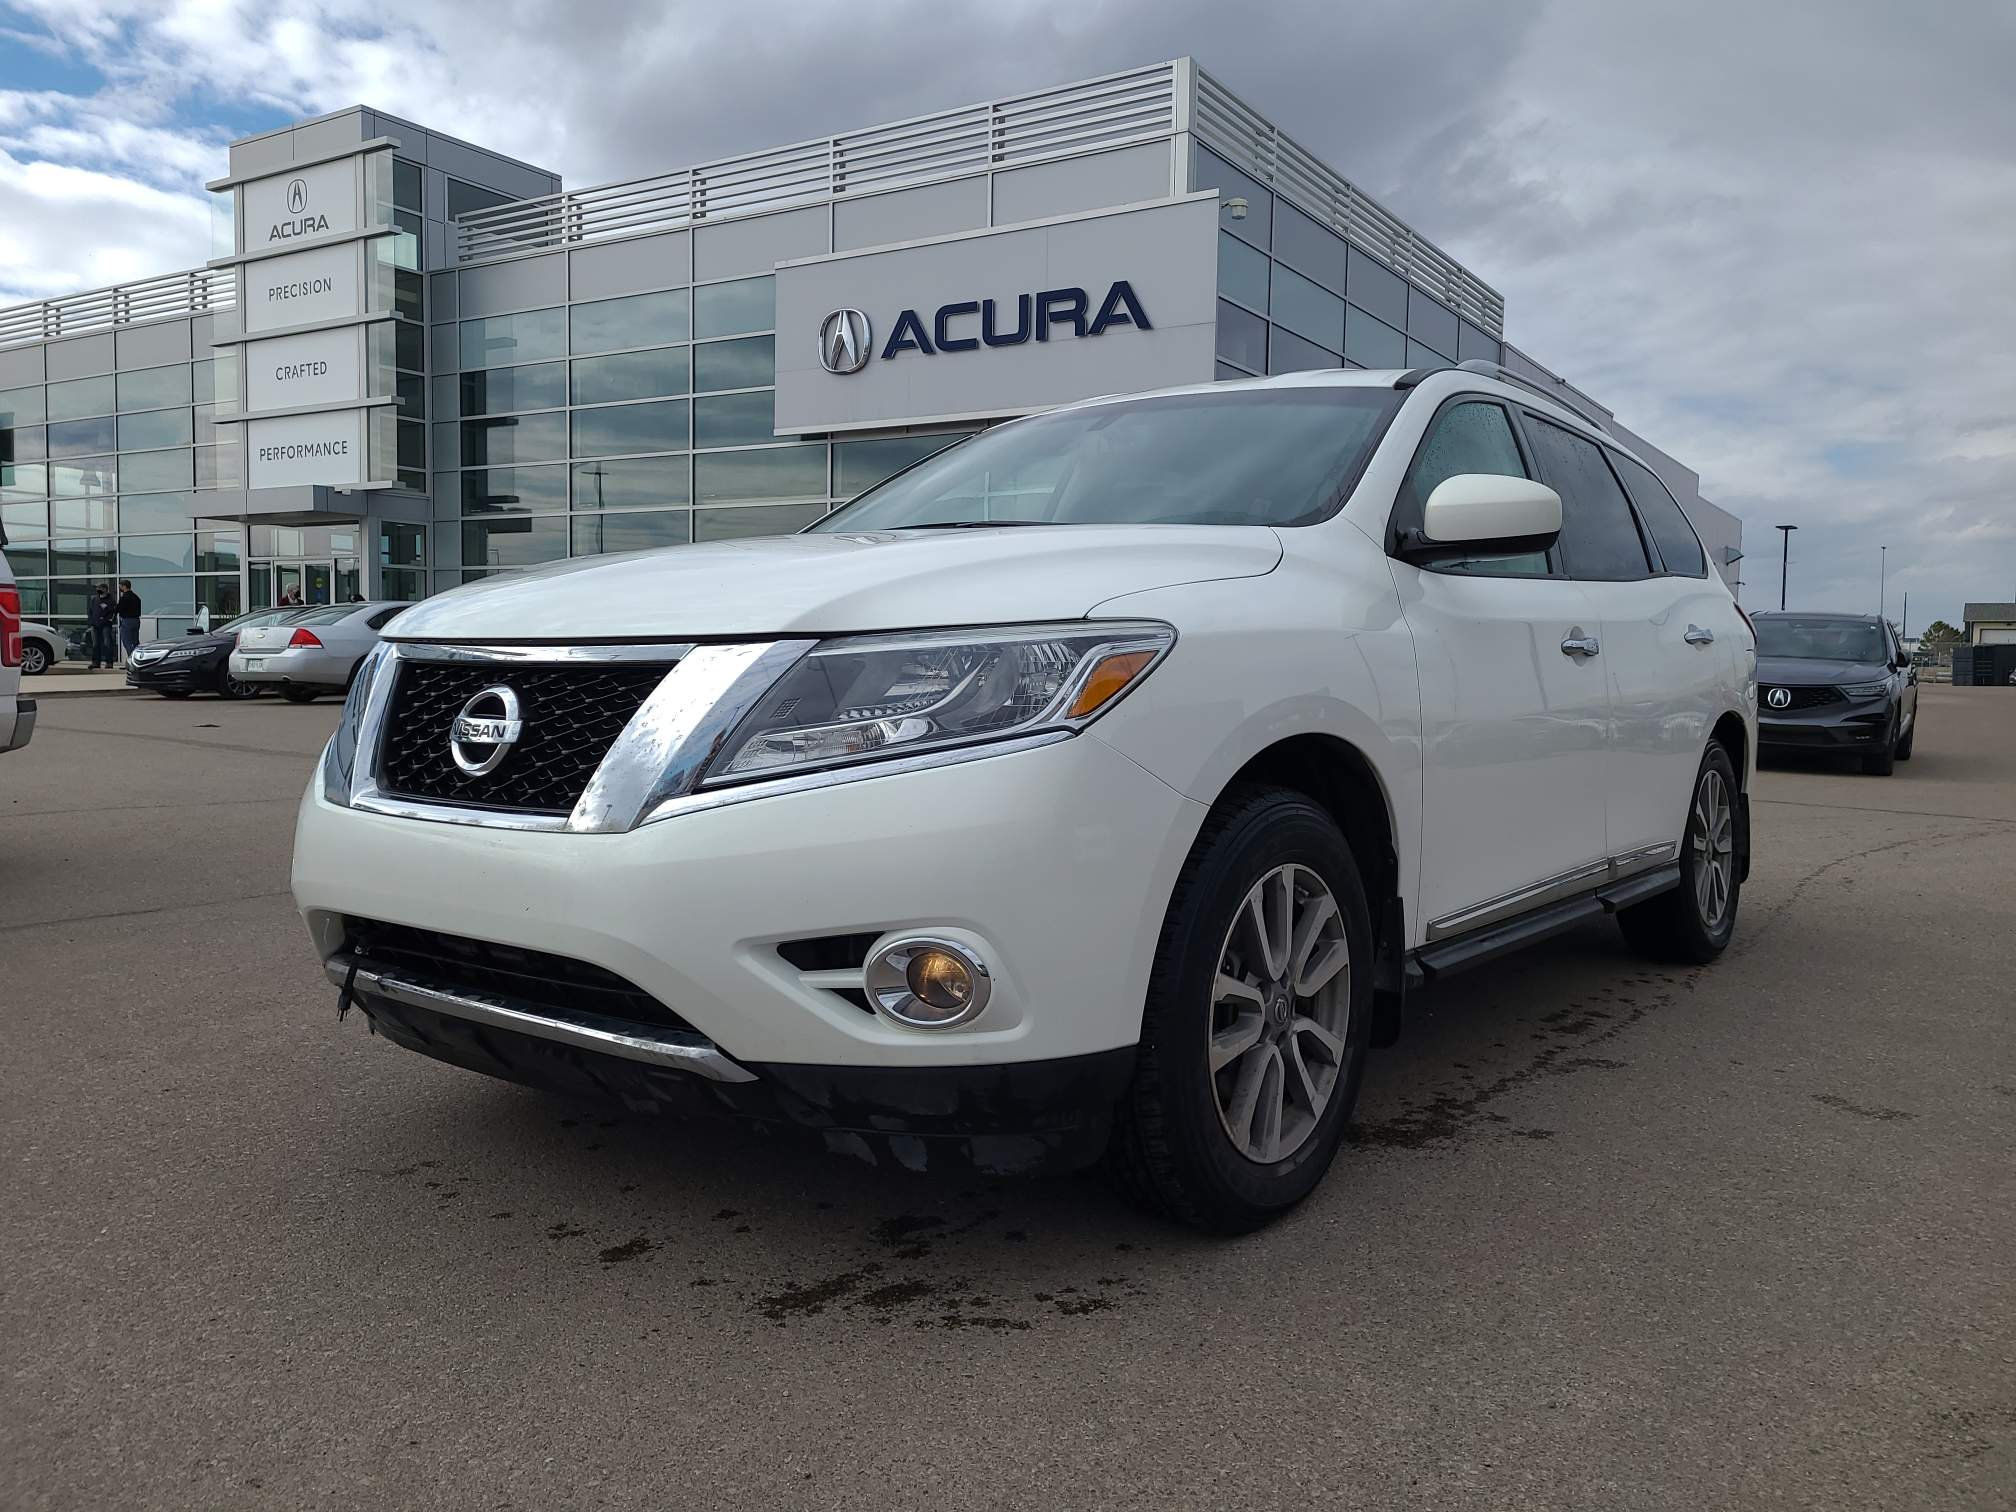 used 2014 Nissan Pathfinder car, priced at $19,852